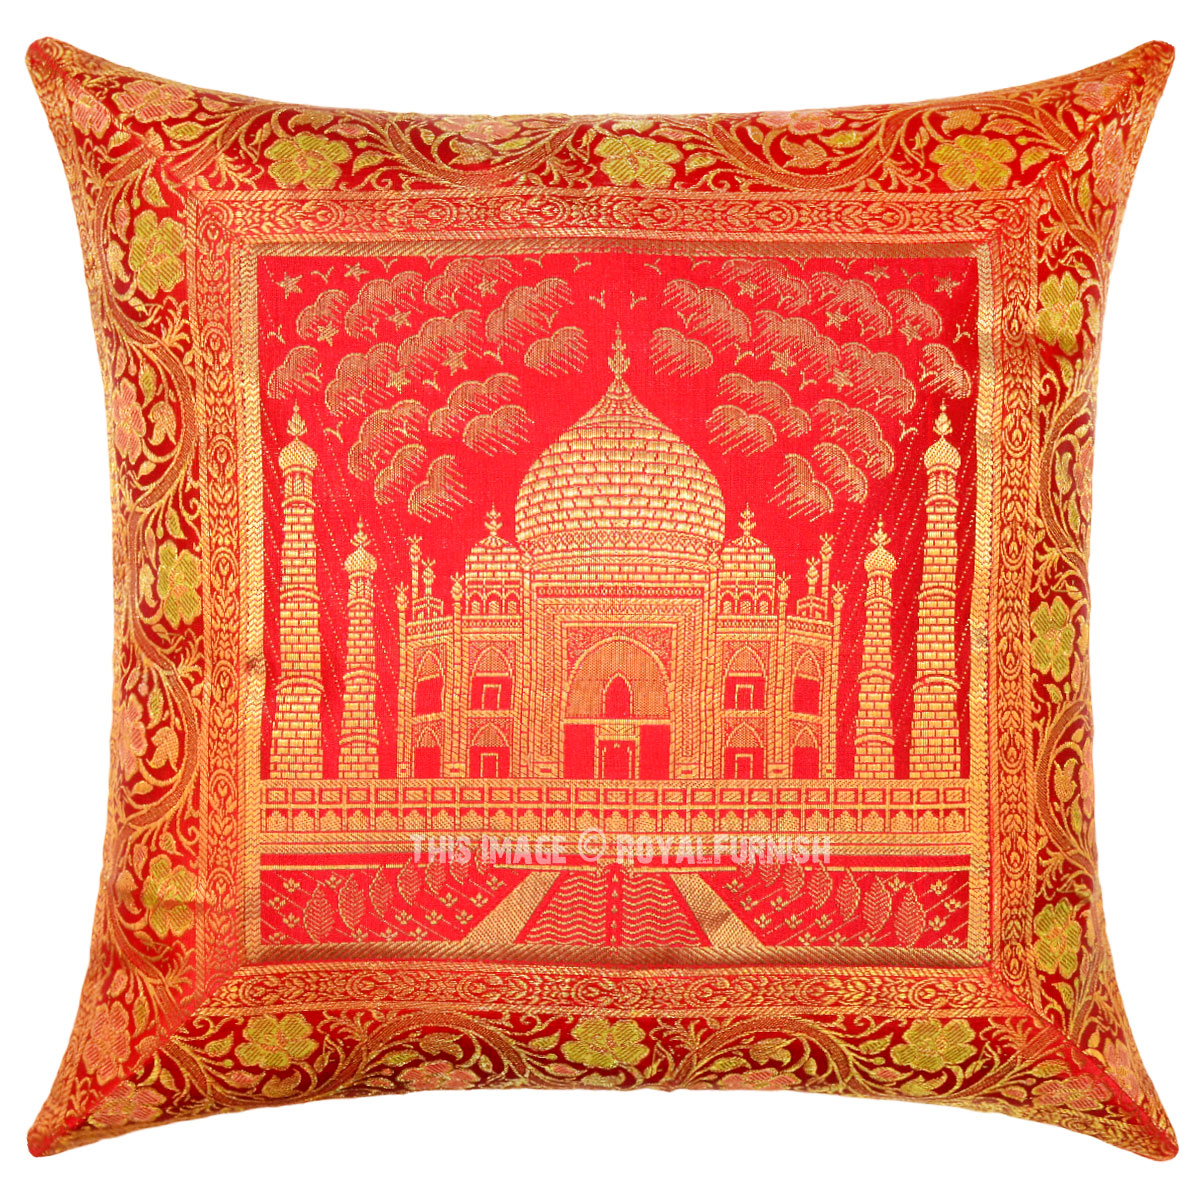 Red Silk Decorative Pillows : Red Color Decorative Tajmahal Silk Brocade Throw Pillow Cover 16X16 - RoyalFurnish.com